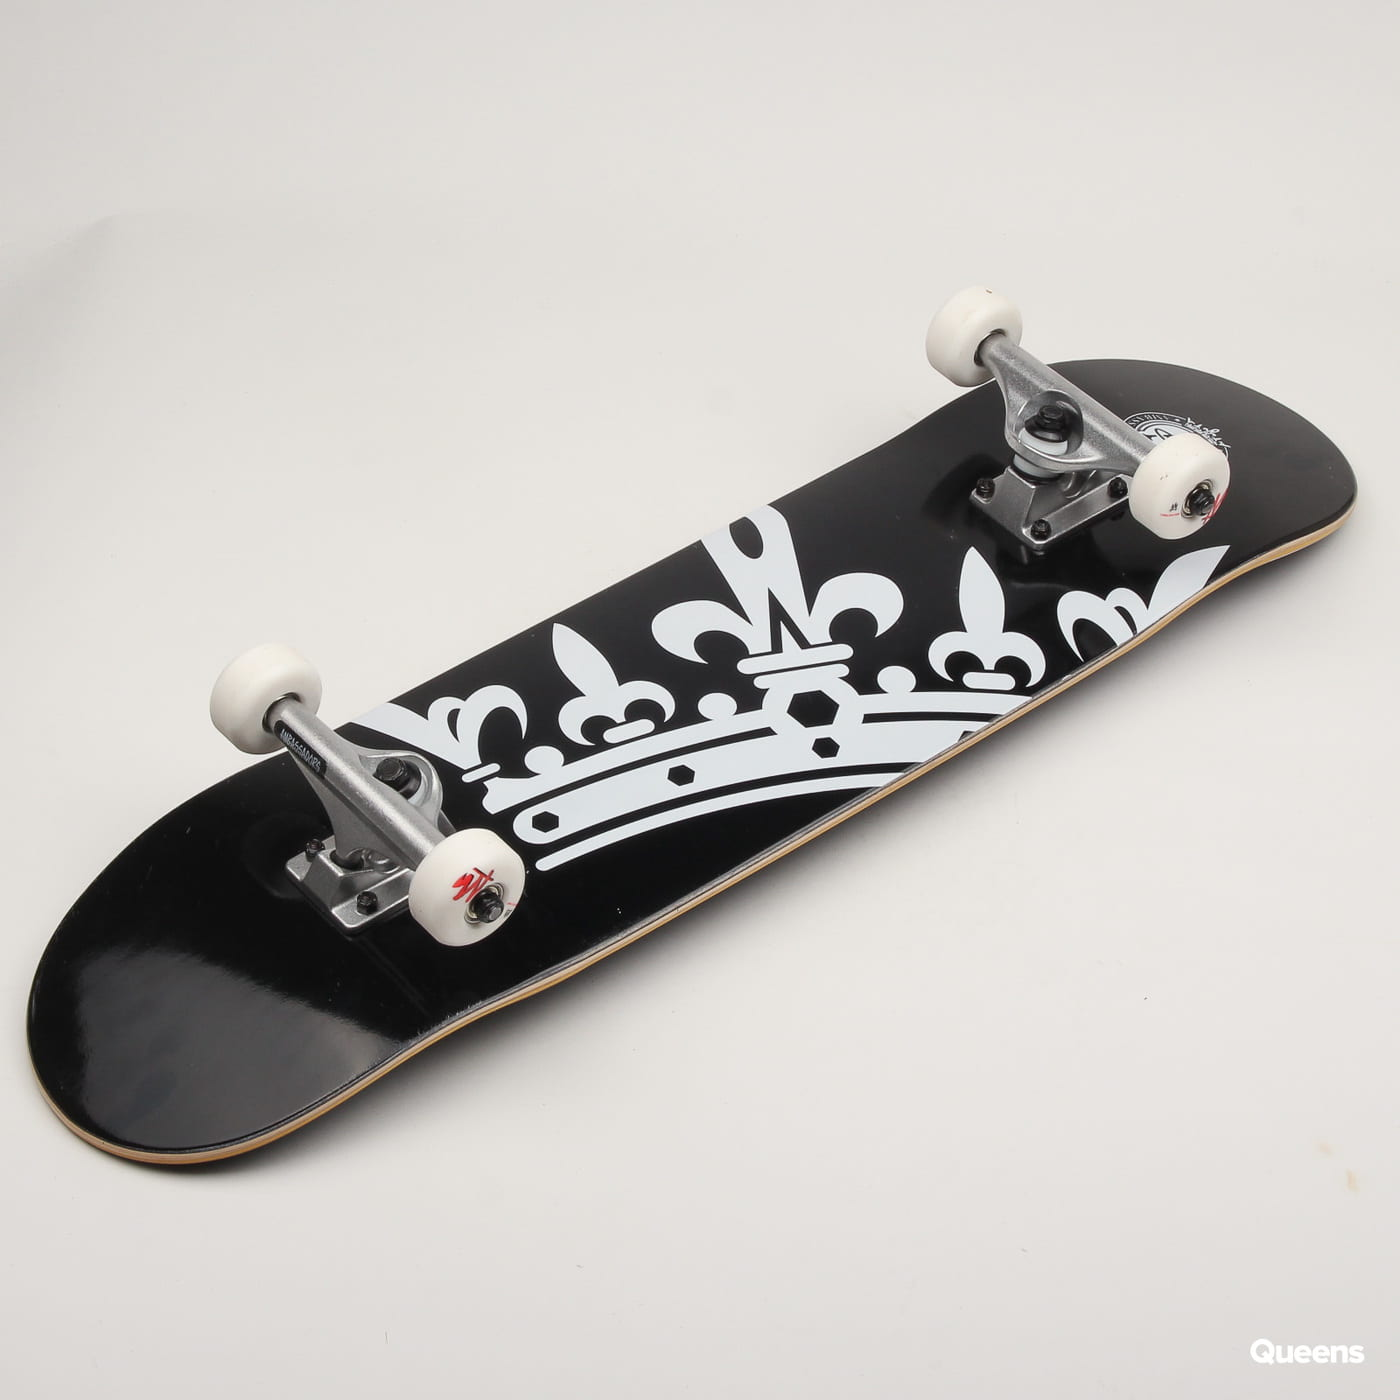 Ambassadors Komplet Skateboard White Crown II.